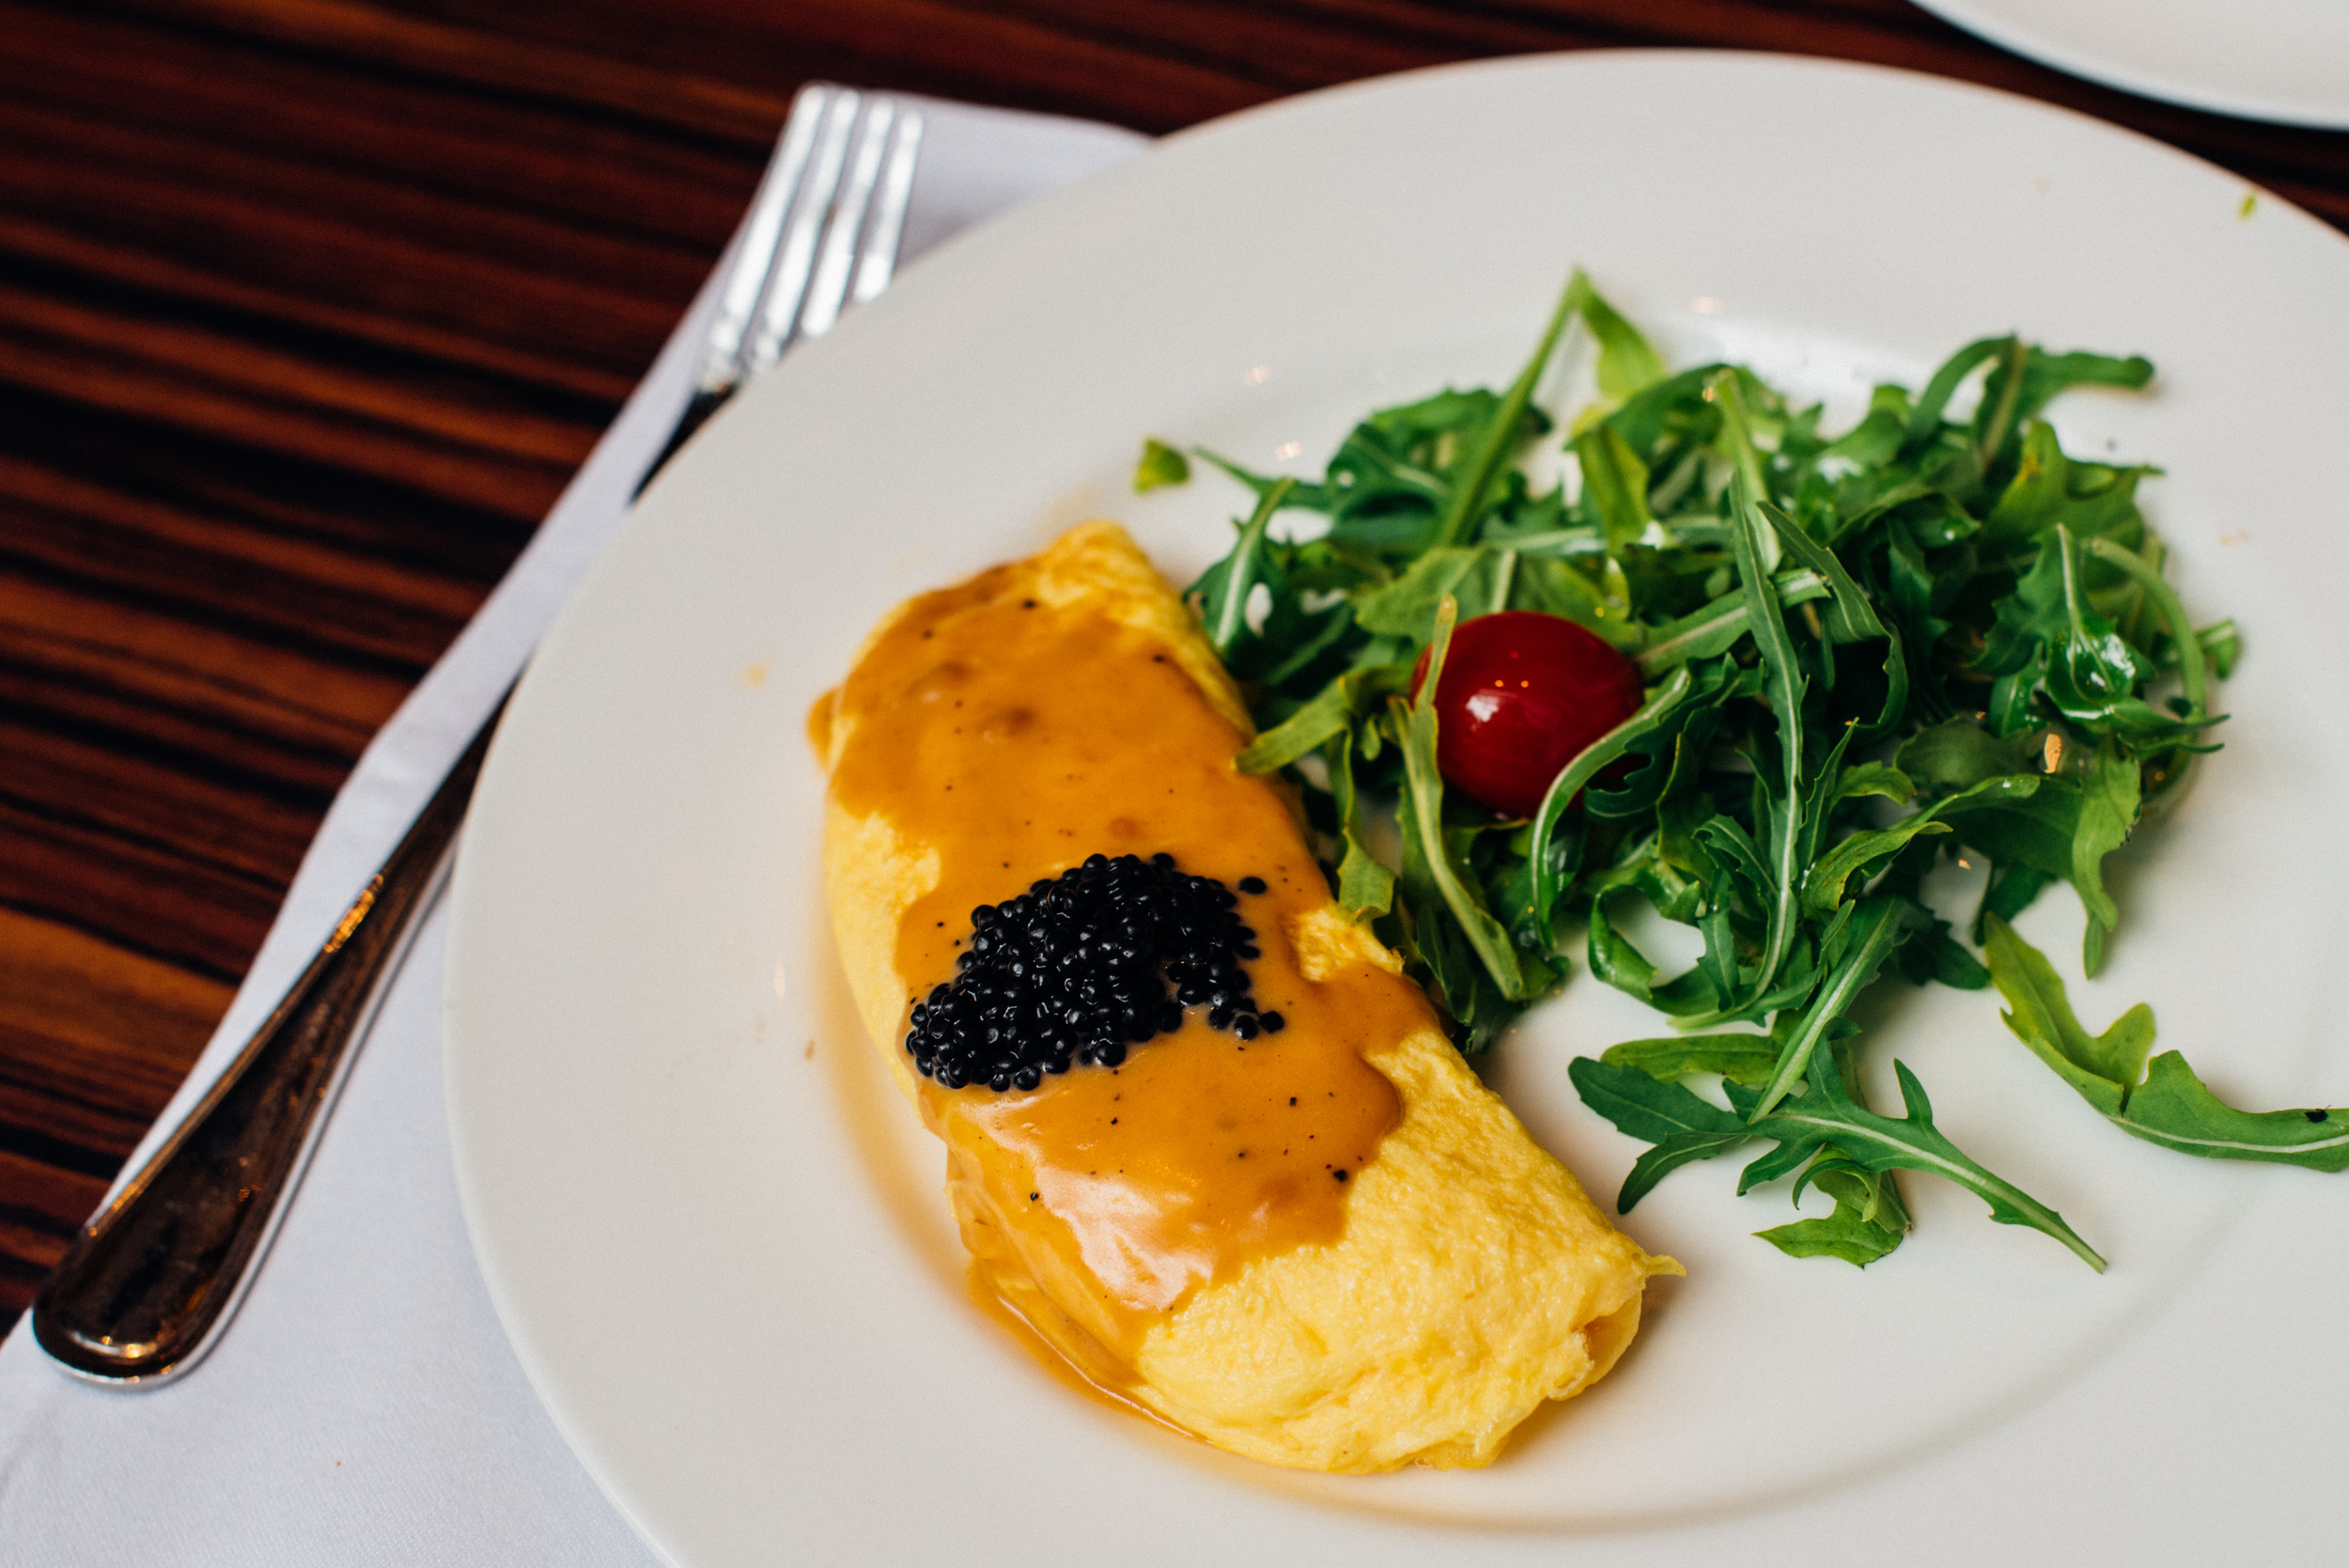 Epicurean Omelette - Breakfast  Brasserie Les Saveurs - The St. Regis Singapore